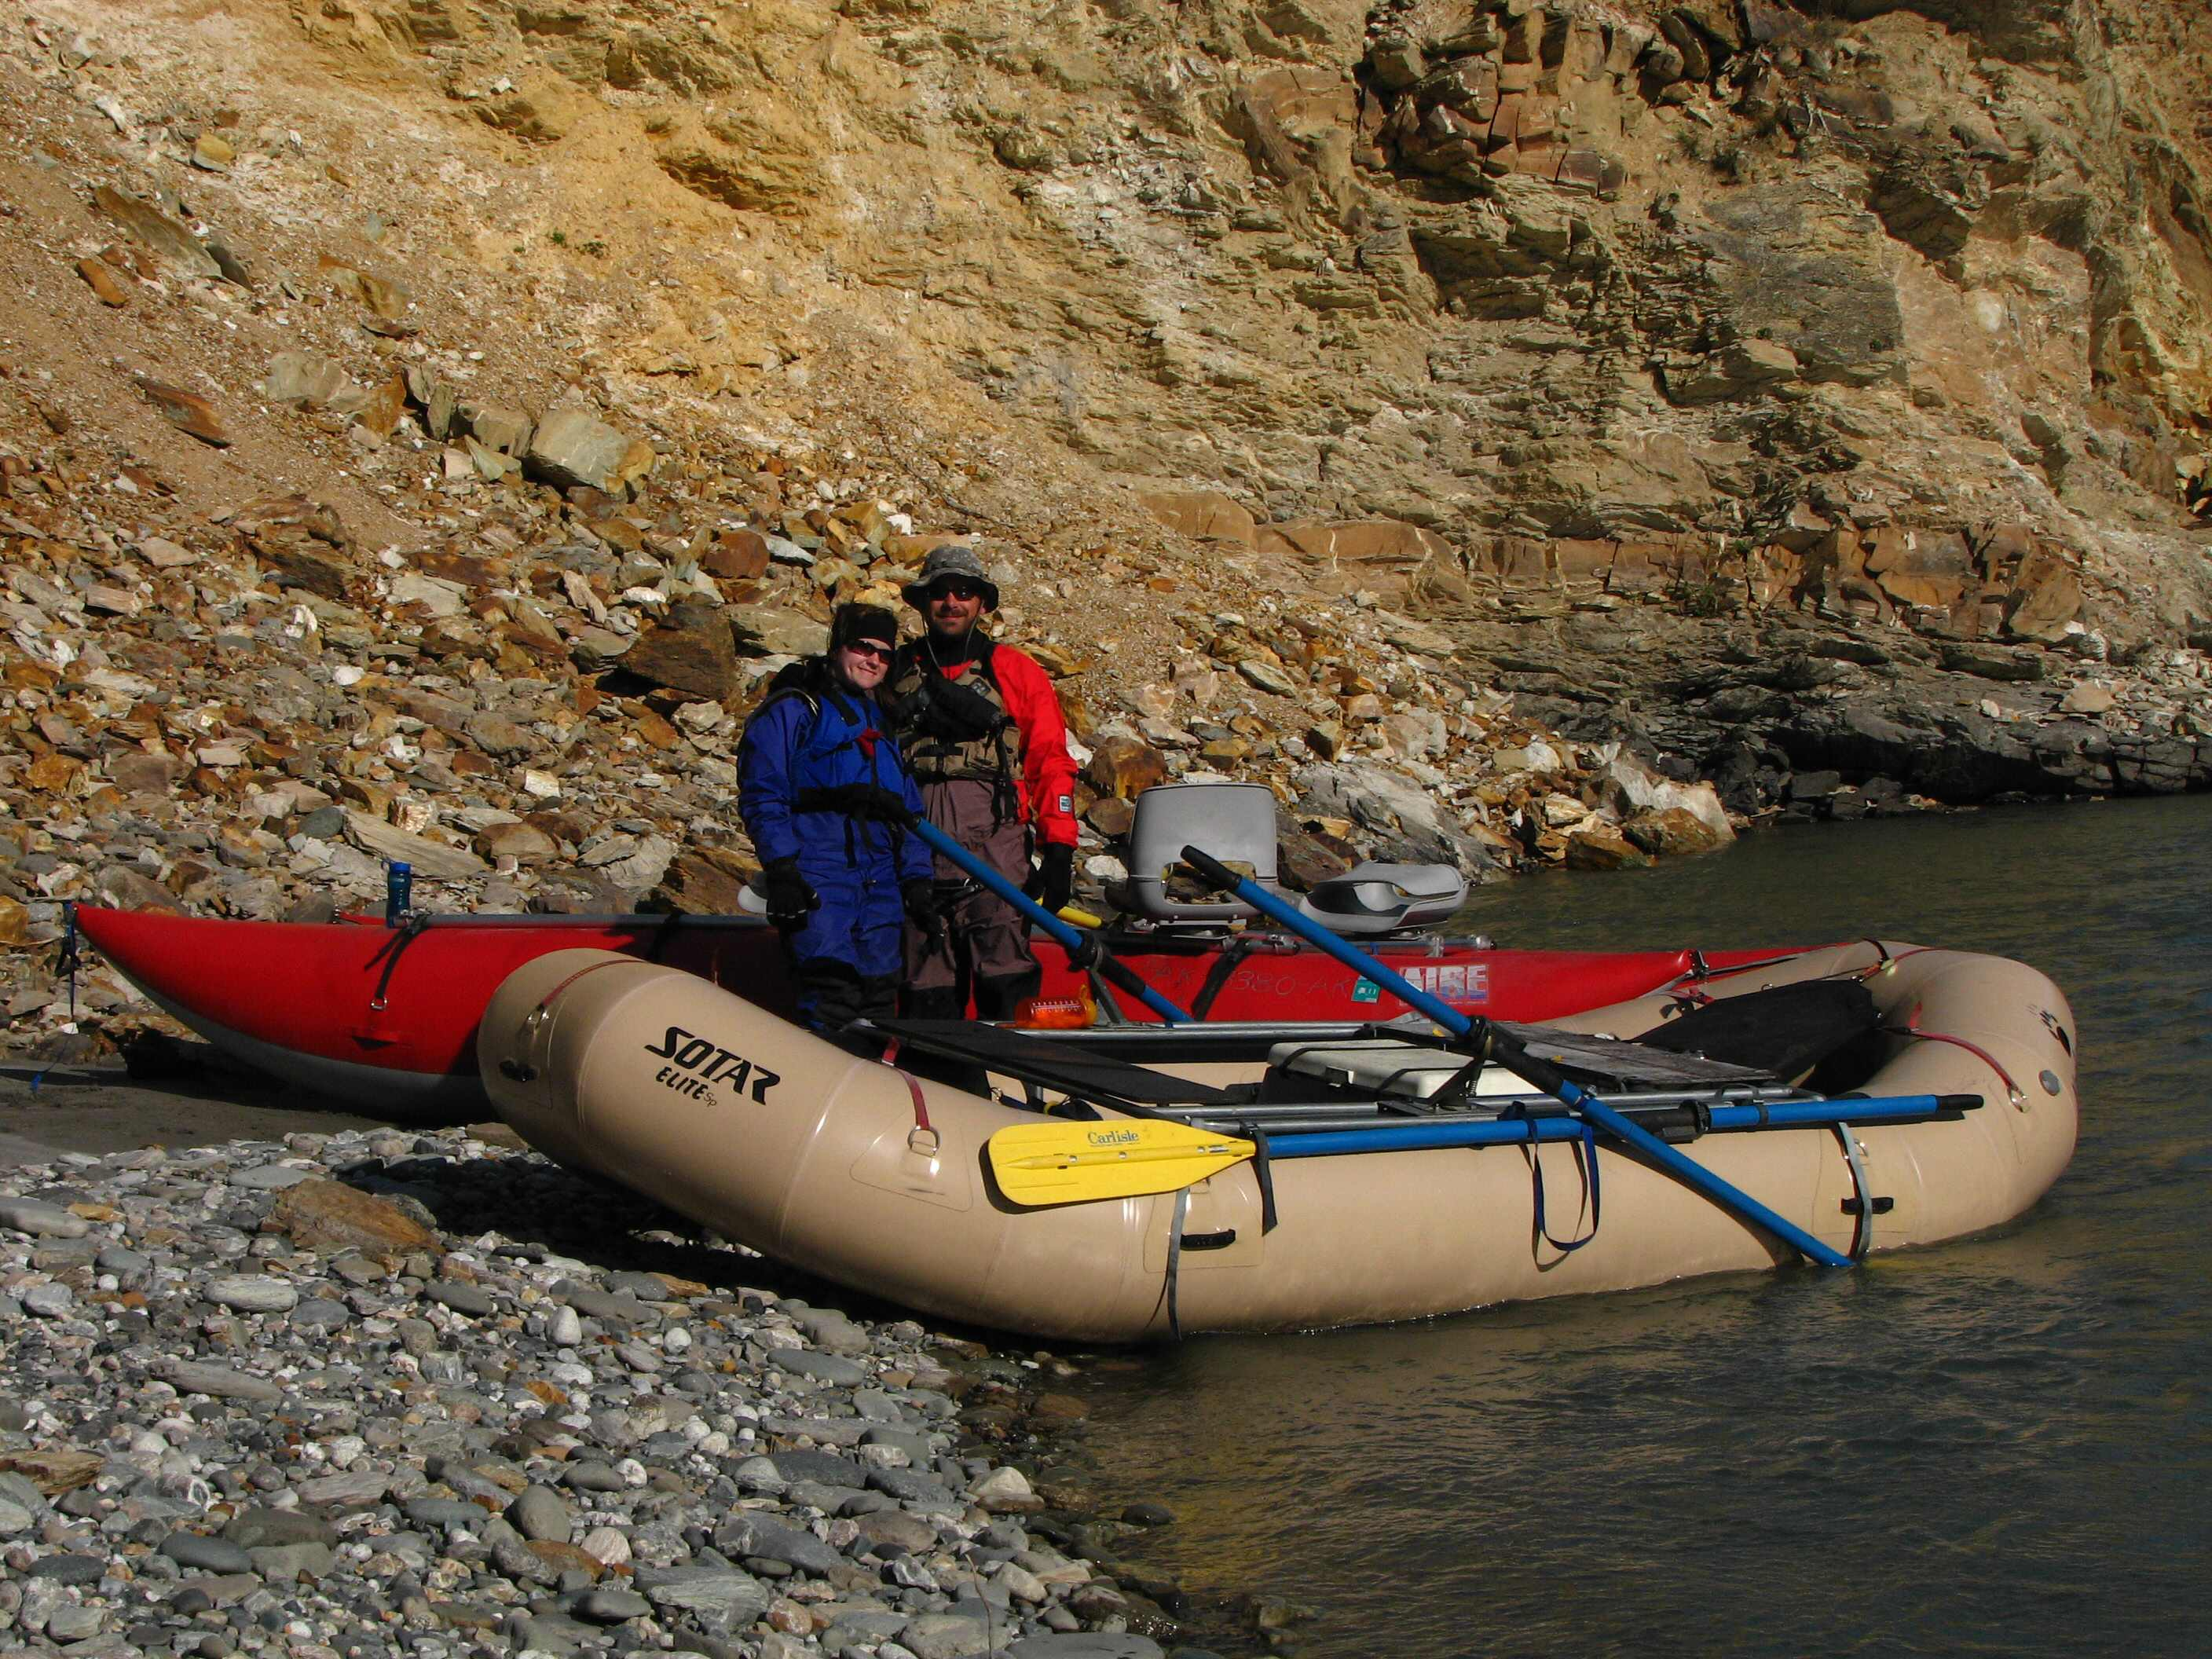 14' SOTAR SP ELITE with 18' AIRE LEOPARD - NENANA CANYON WHITEWATER